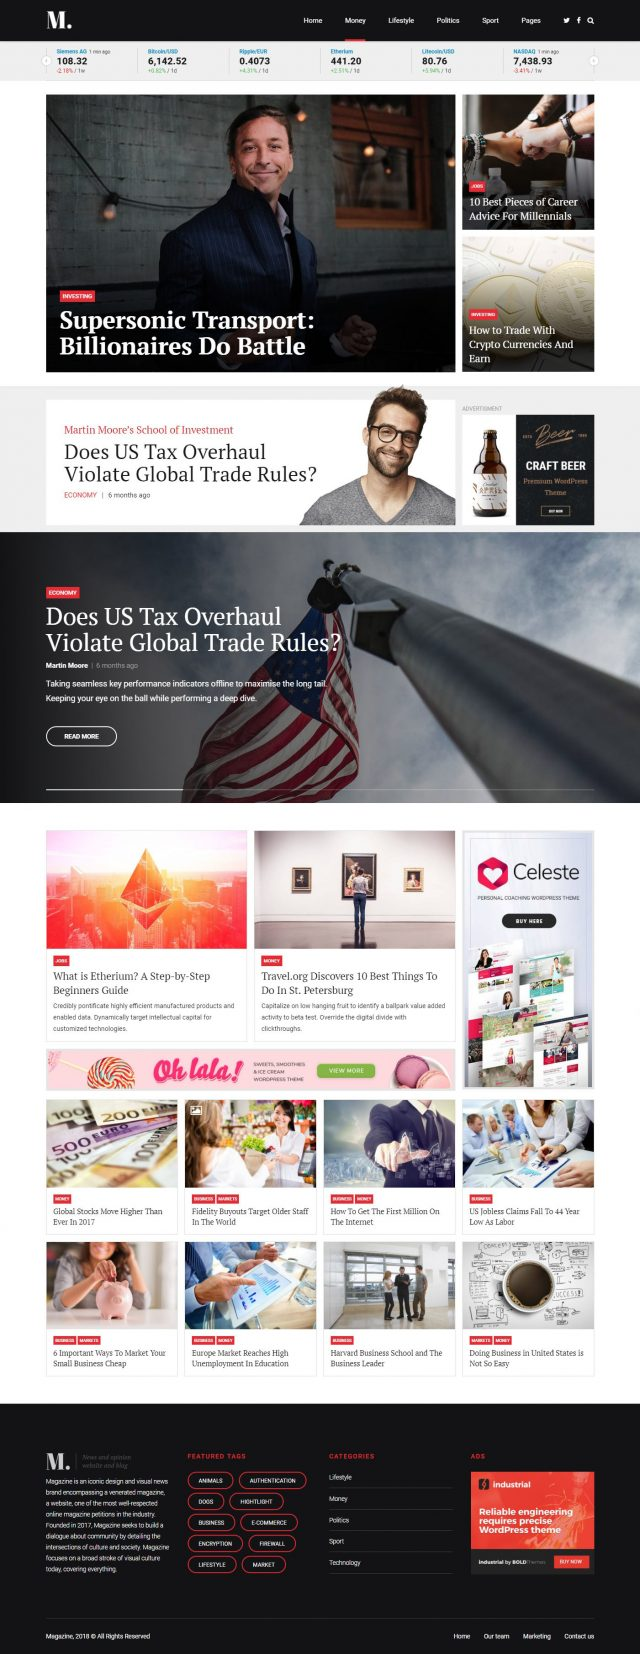 newstar wordpress theme business magazine homepage layout